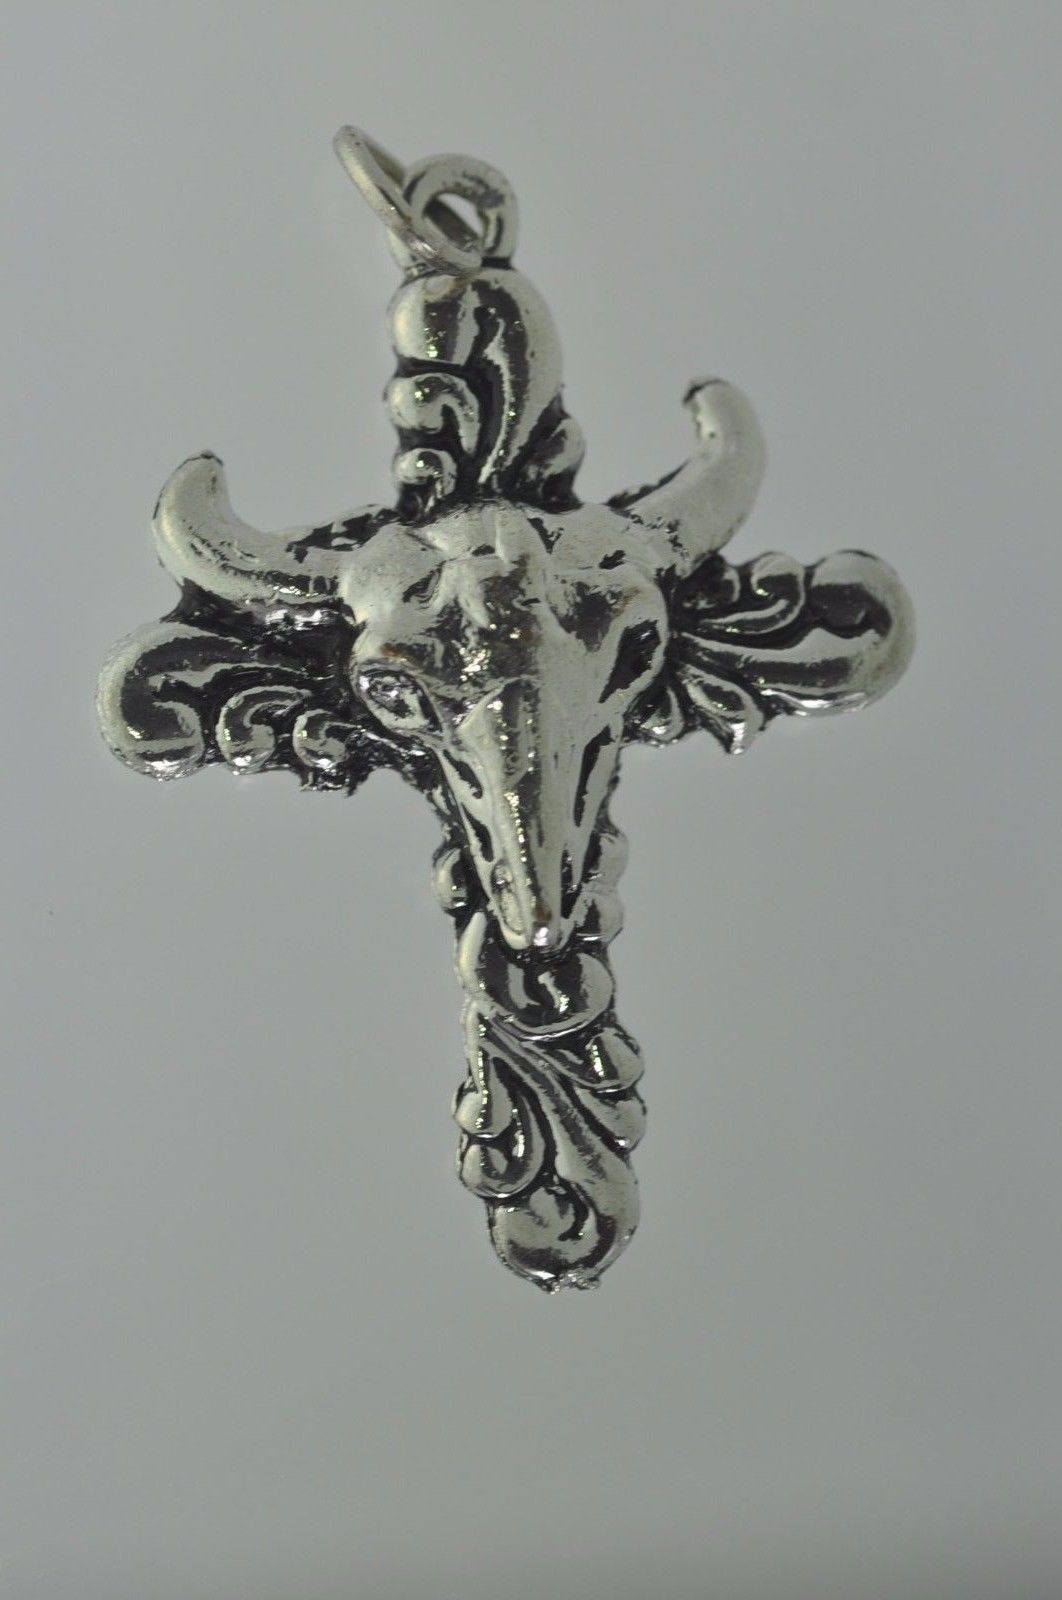 NICE Sterling Silver 925 charm Jewelry Bullfighter Cross Bull Torero Cowboy West